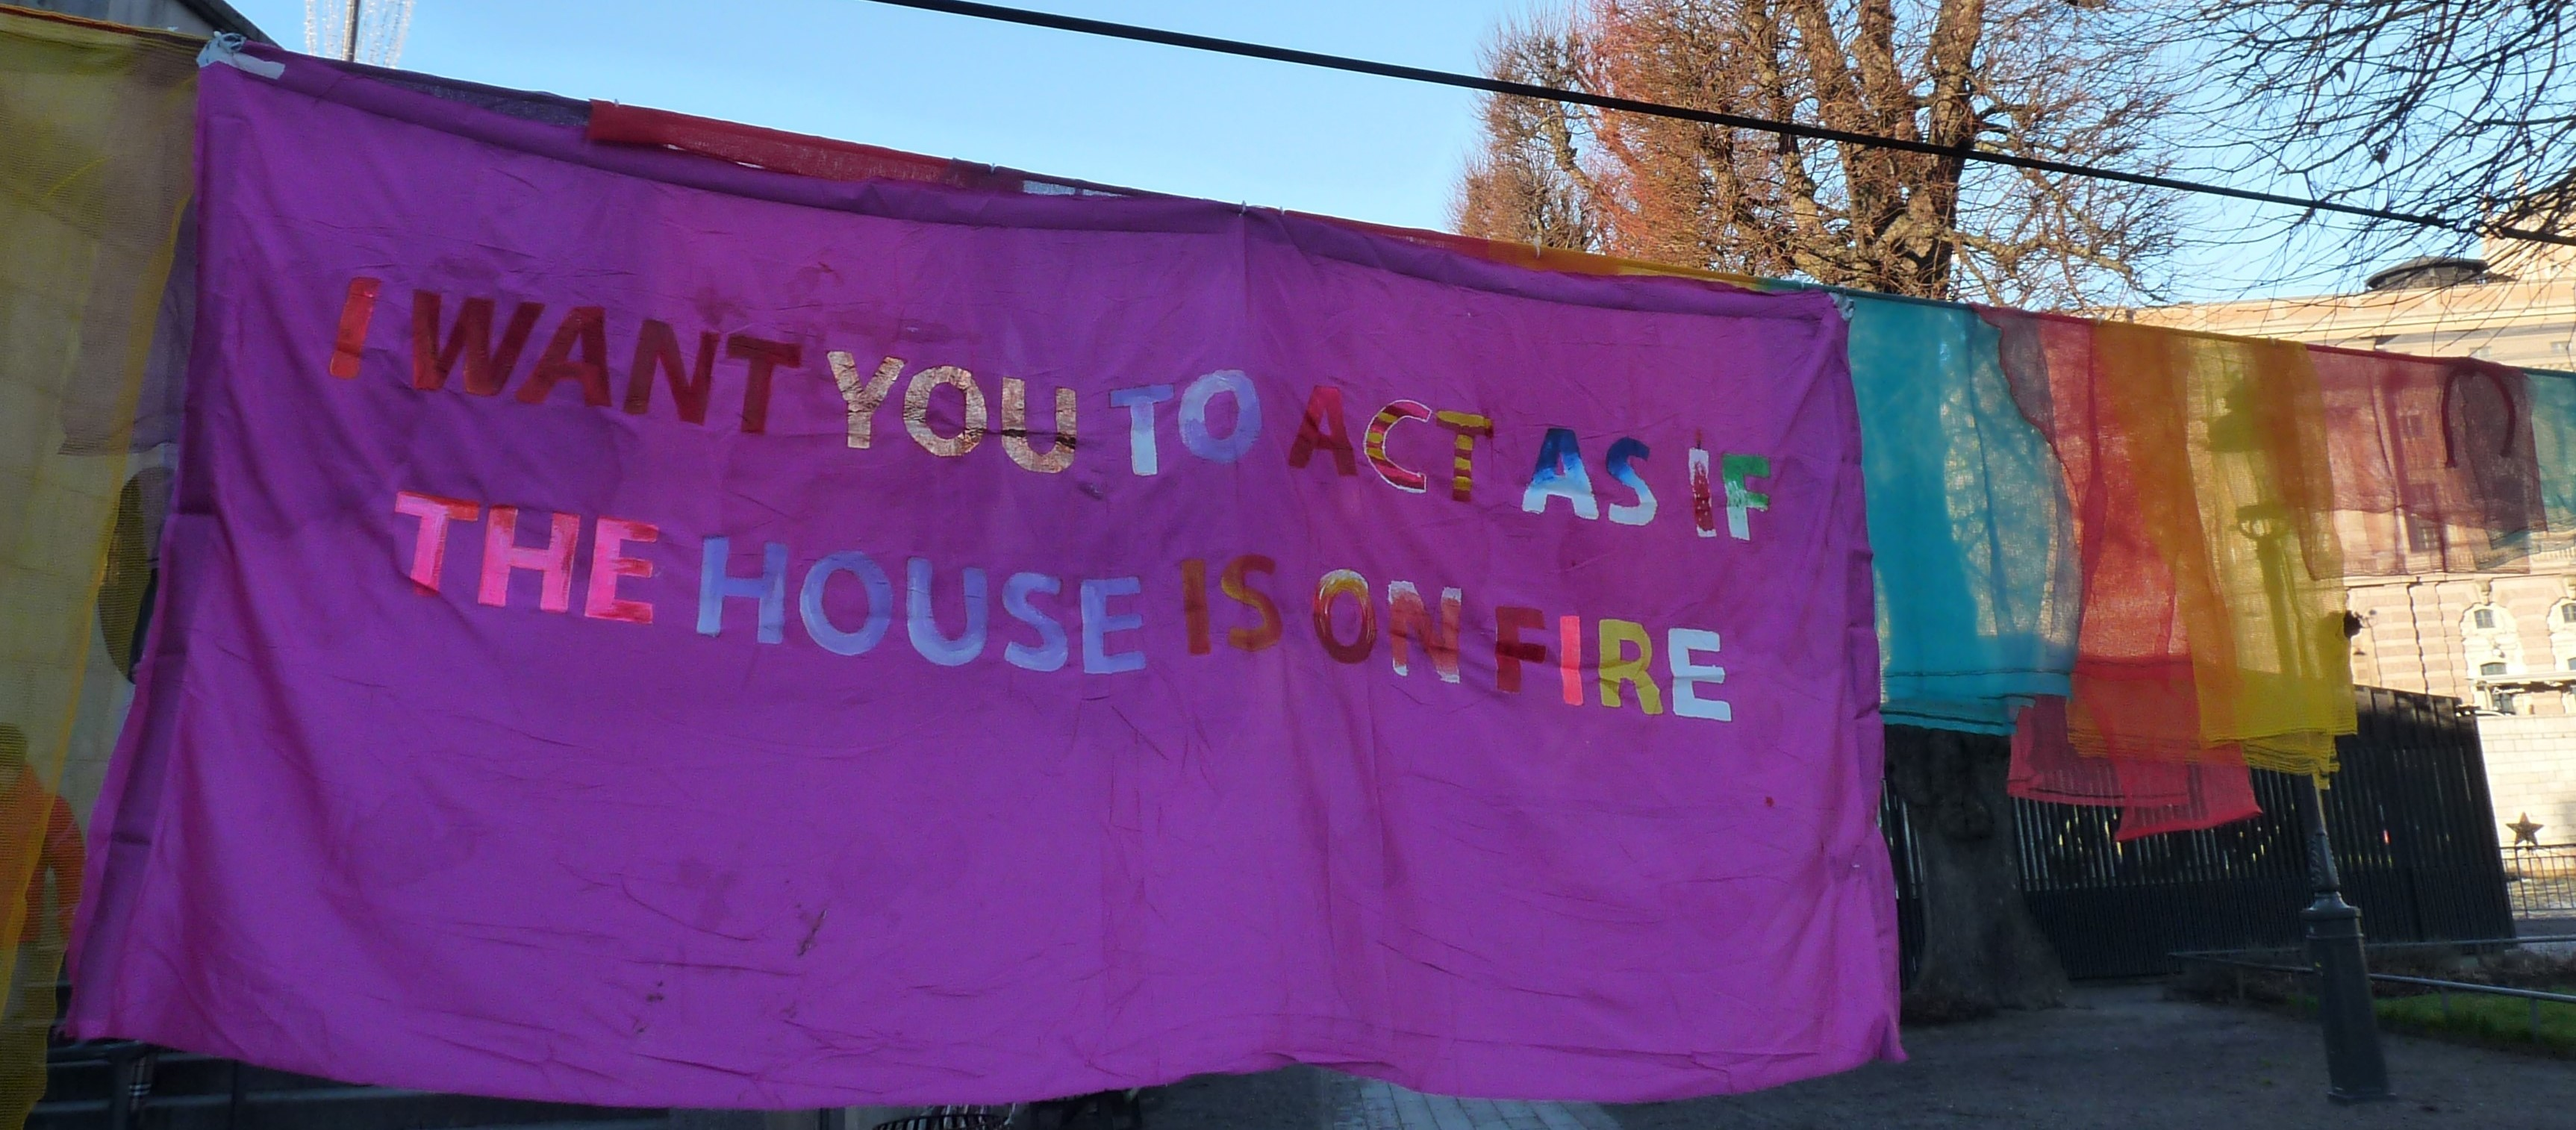 """""""I want you to act as if the house is on fire by Roberta Biasillo (C)"""